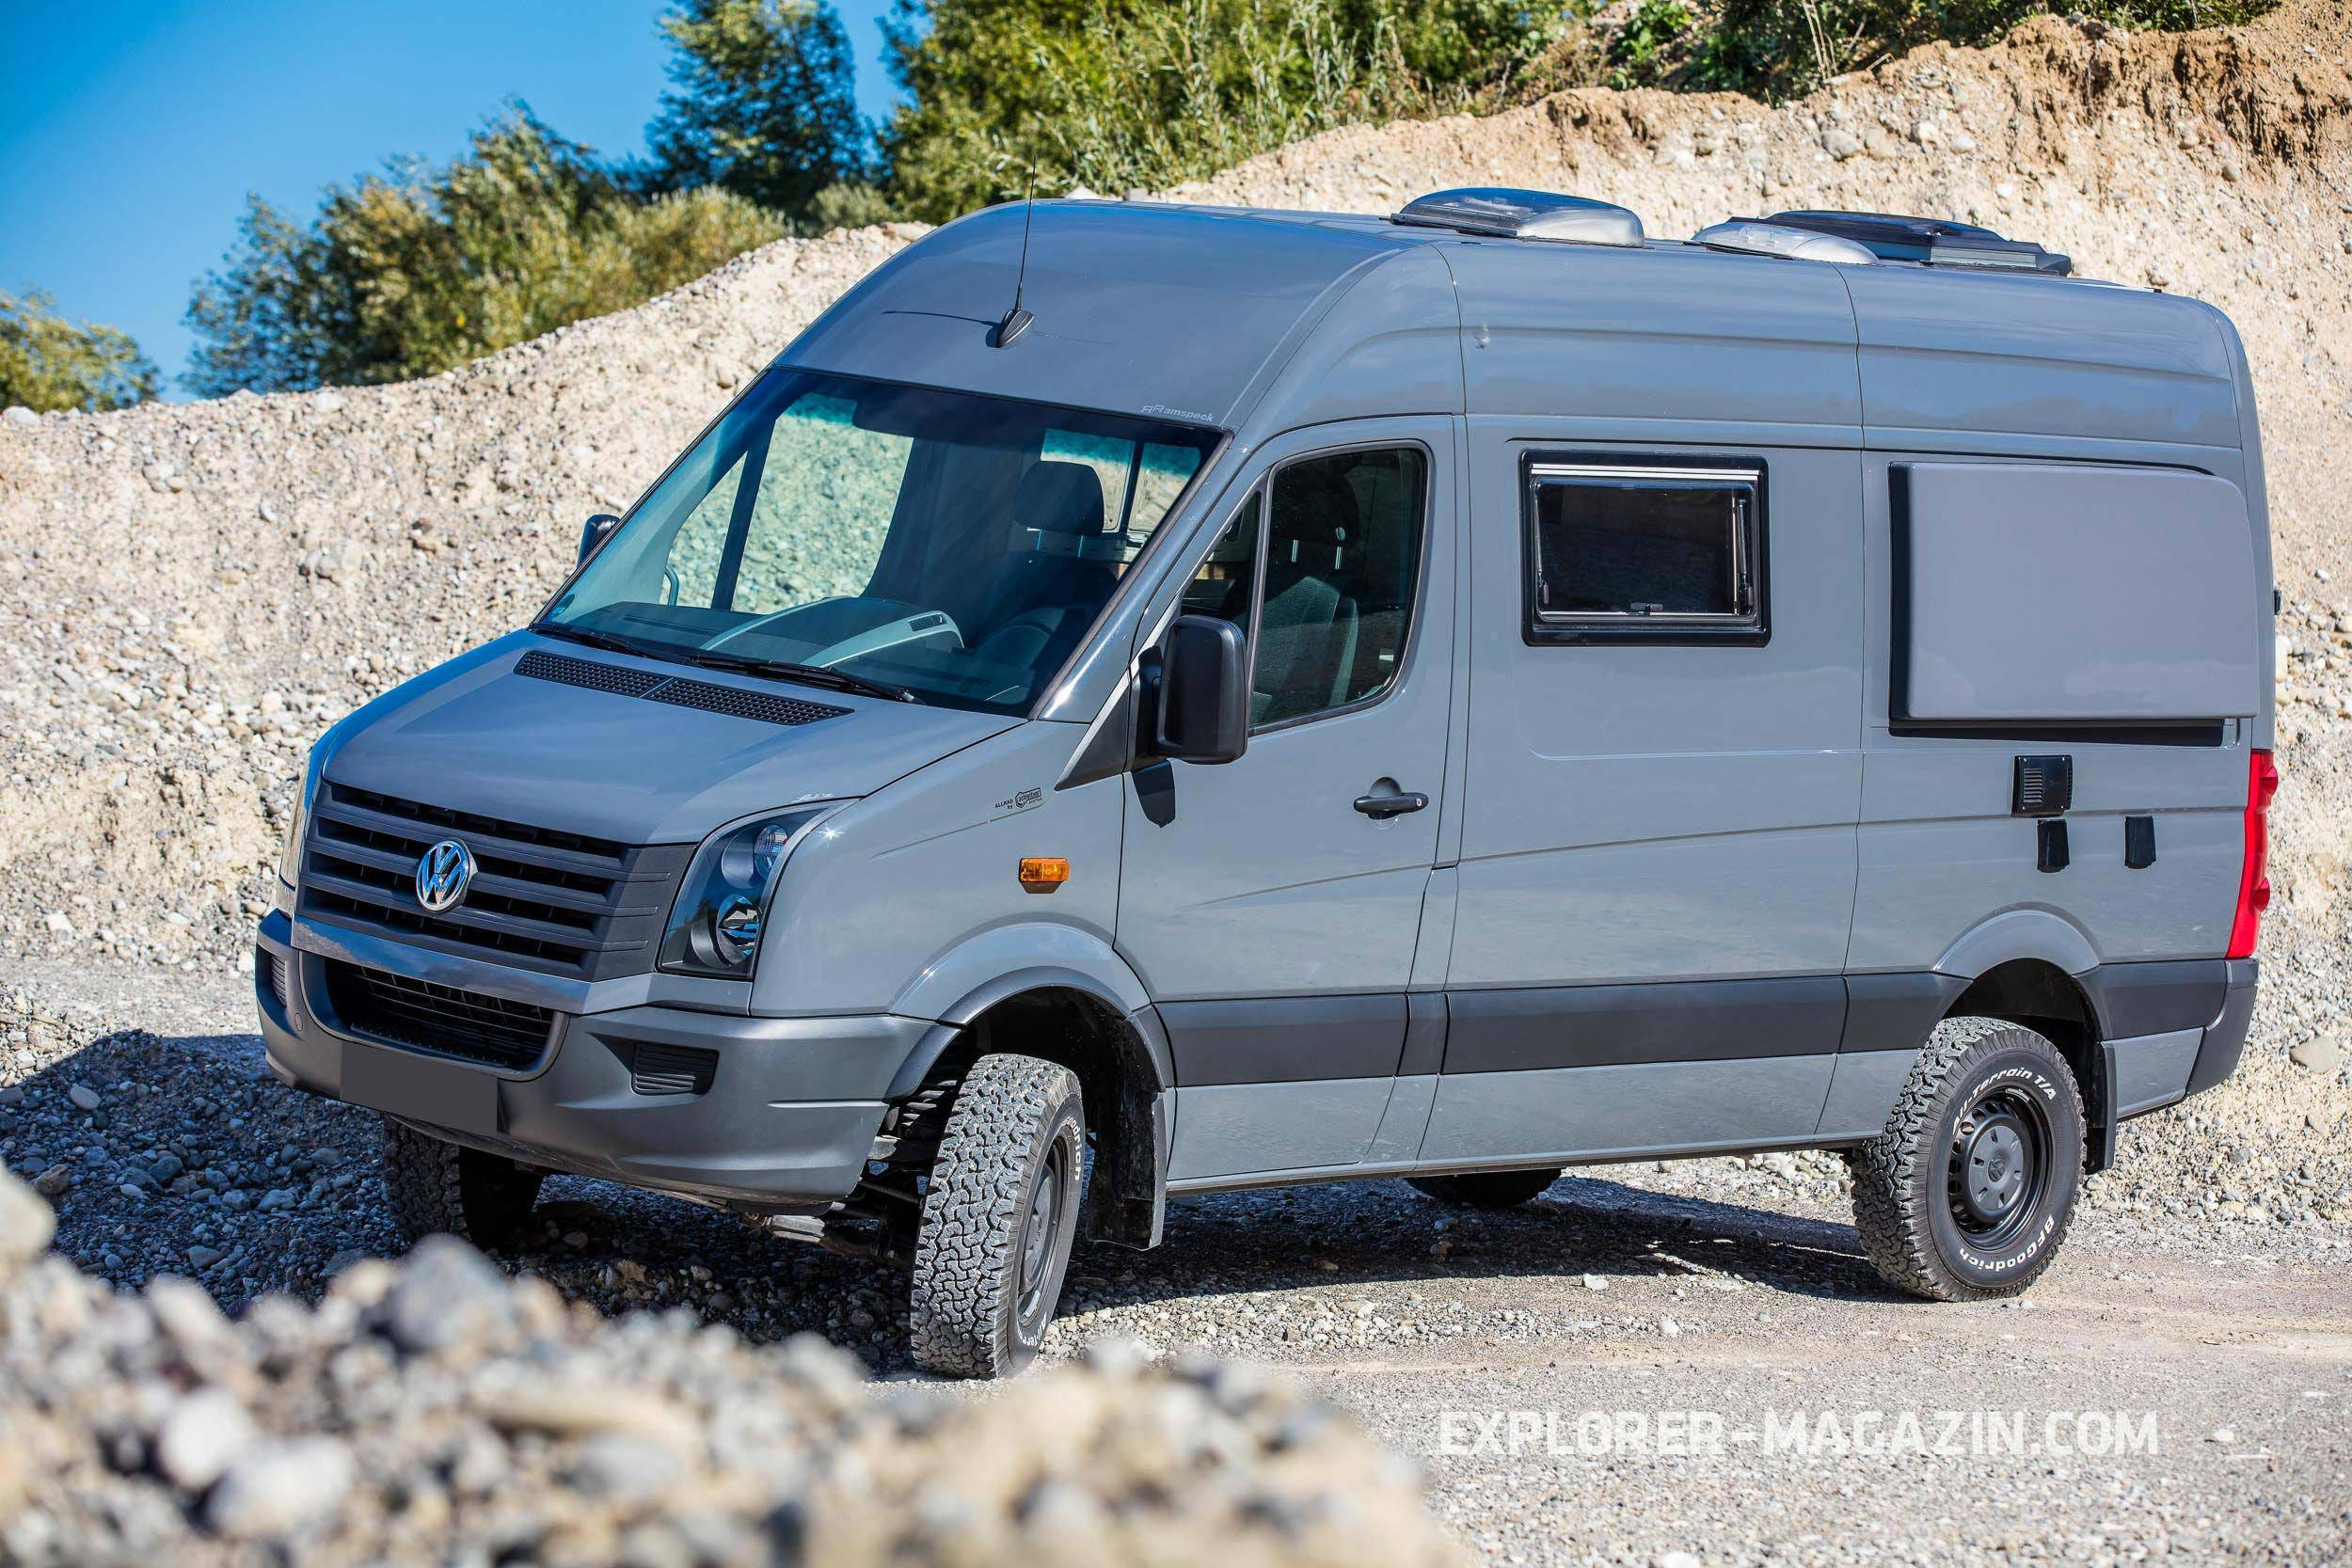 VW Crafter 10motion Vergleich  EXPLORER Magazin  Crafter